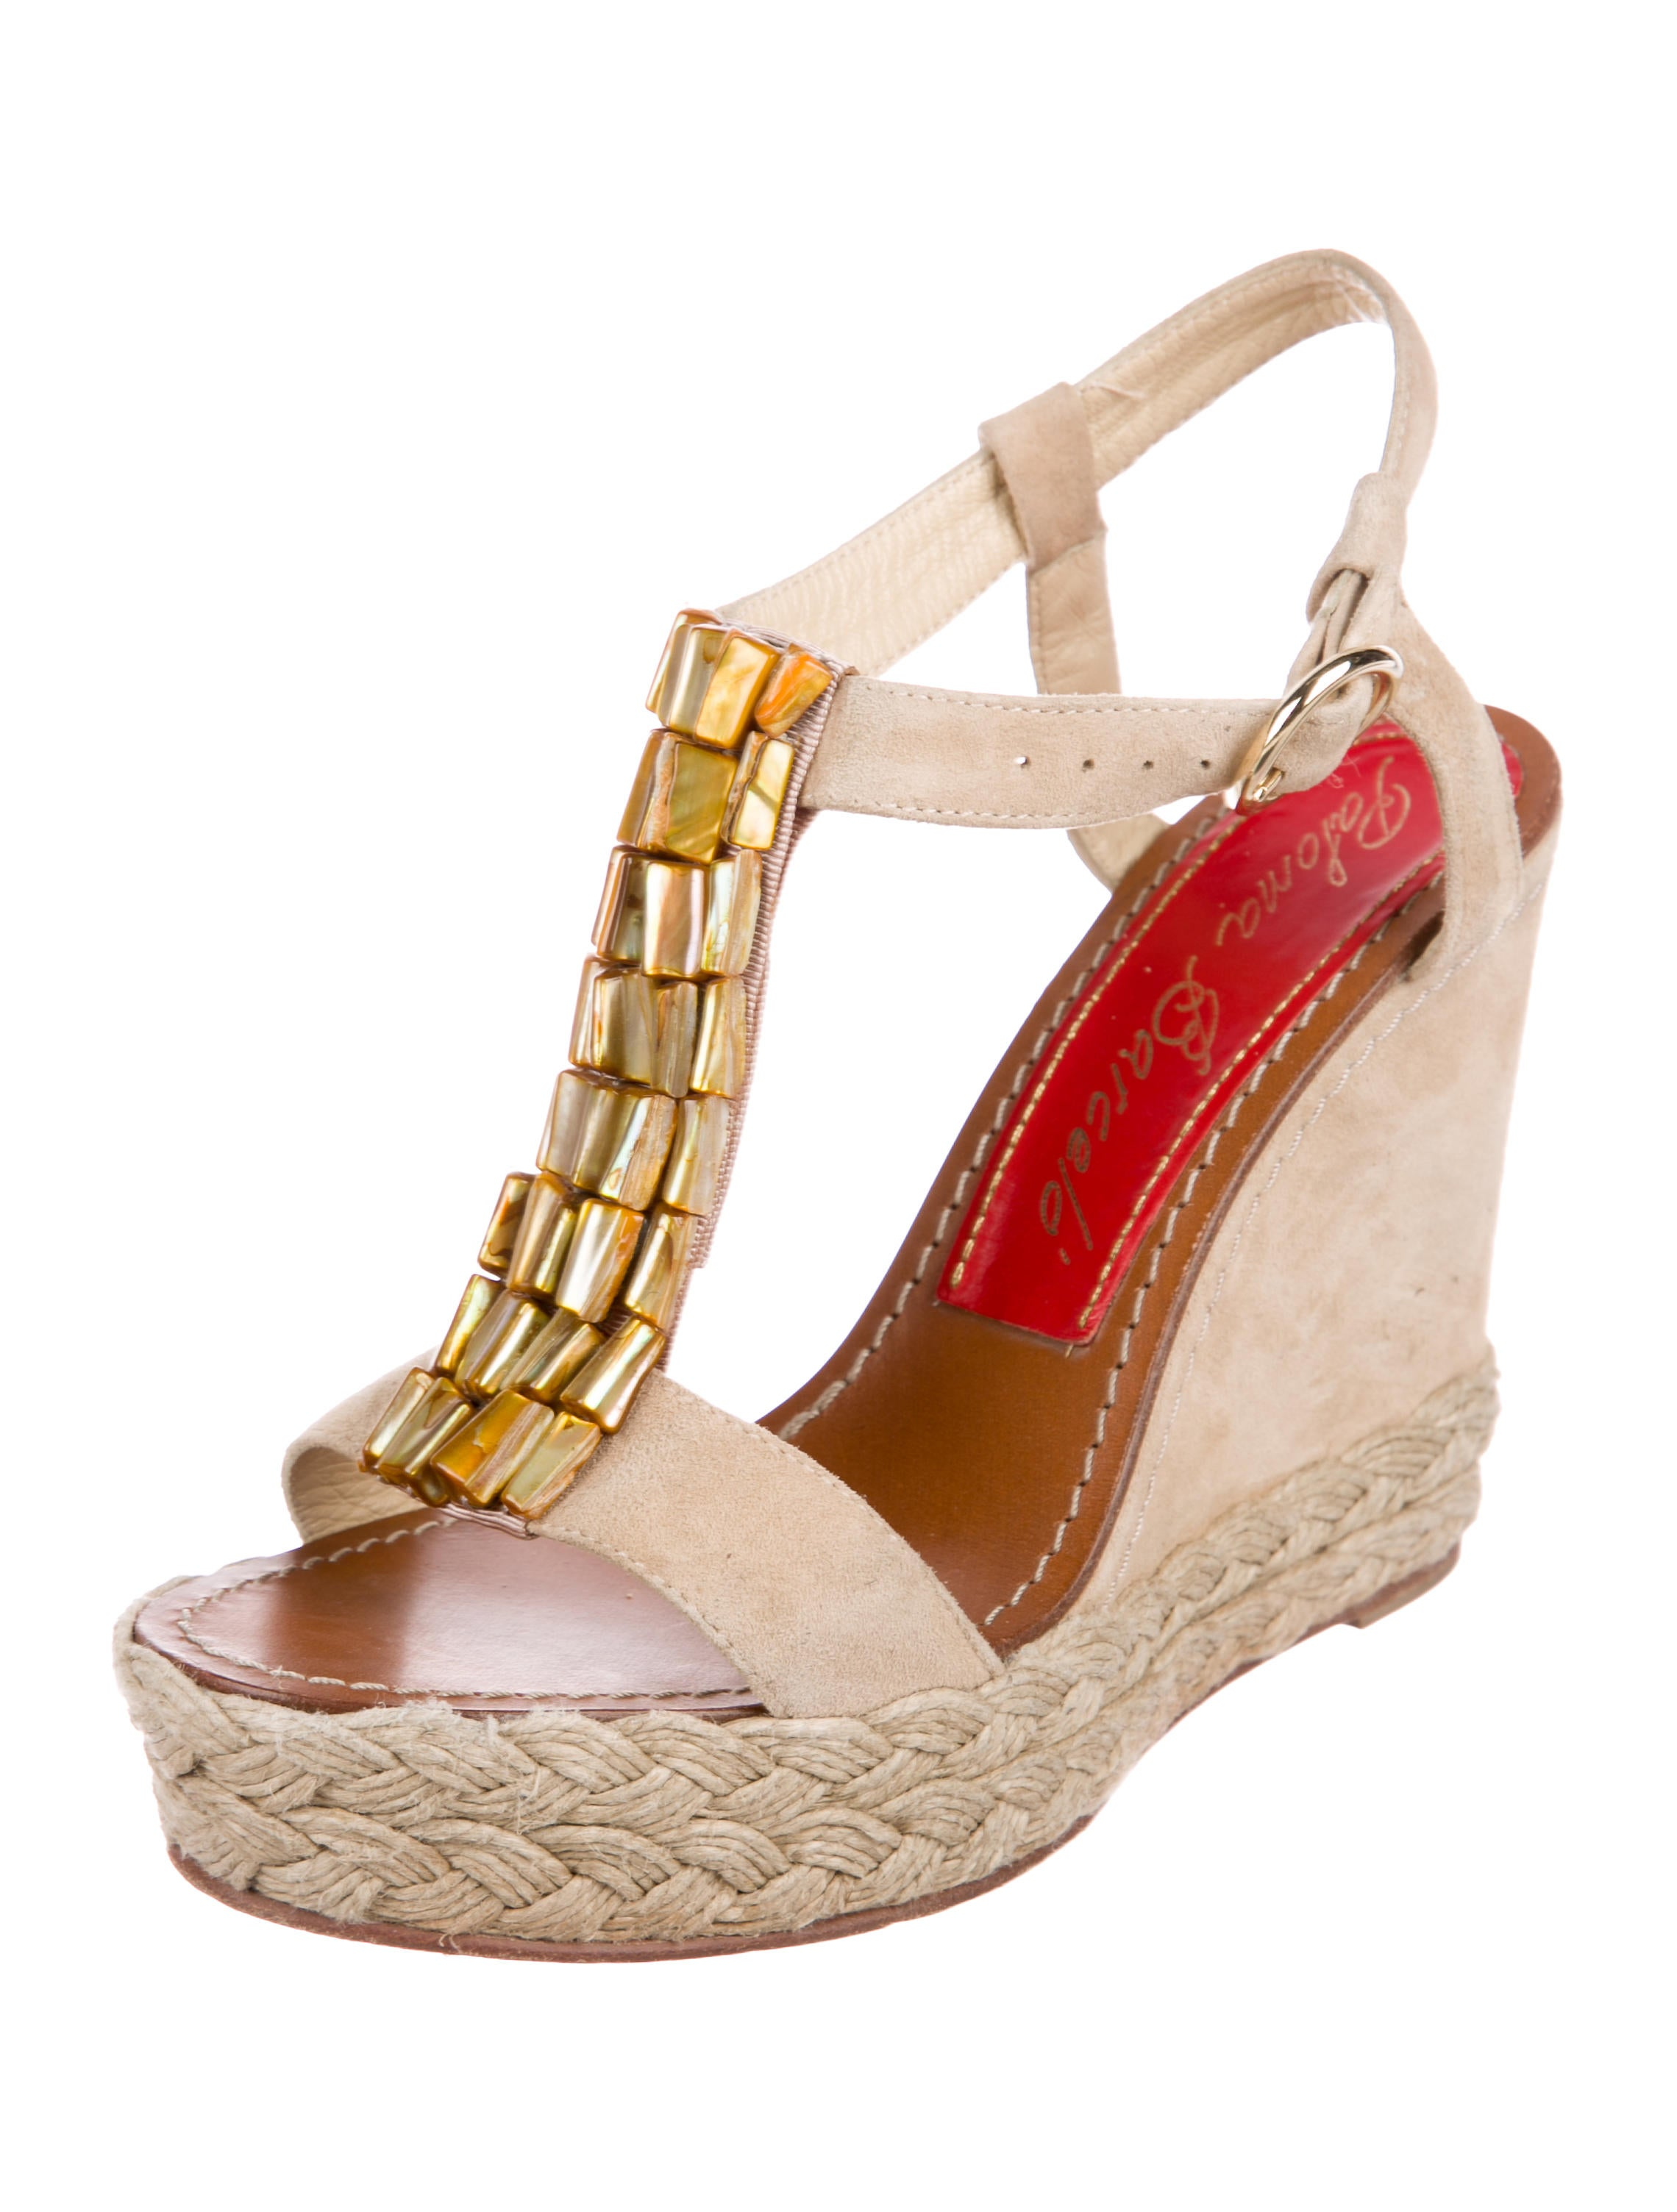 cheap best seller new cheap price Barceló Paloma Berceló Suede Embellished Wedges ICiyhyxQ9